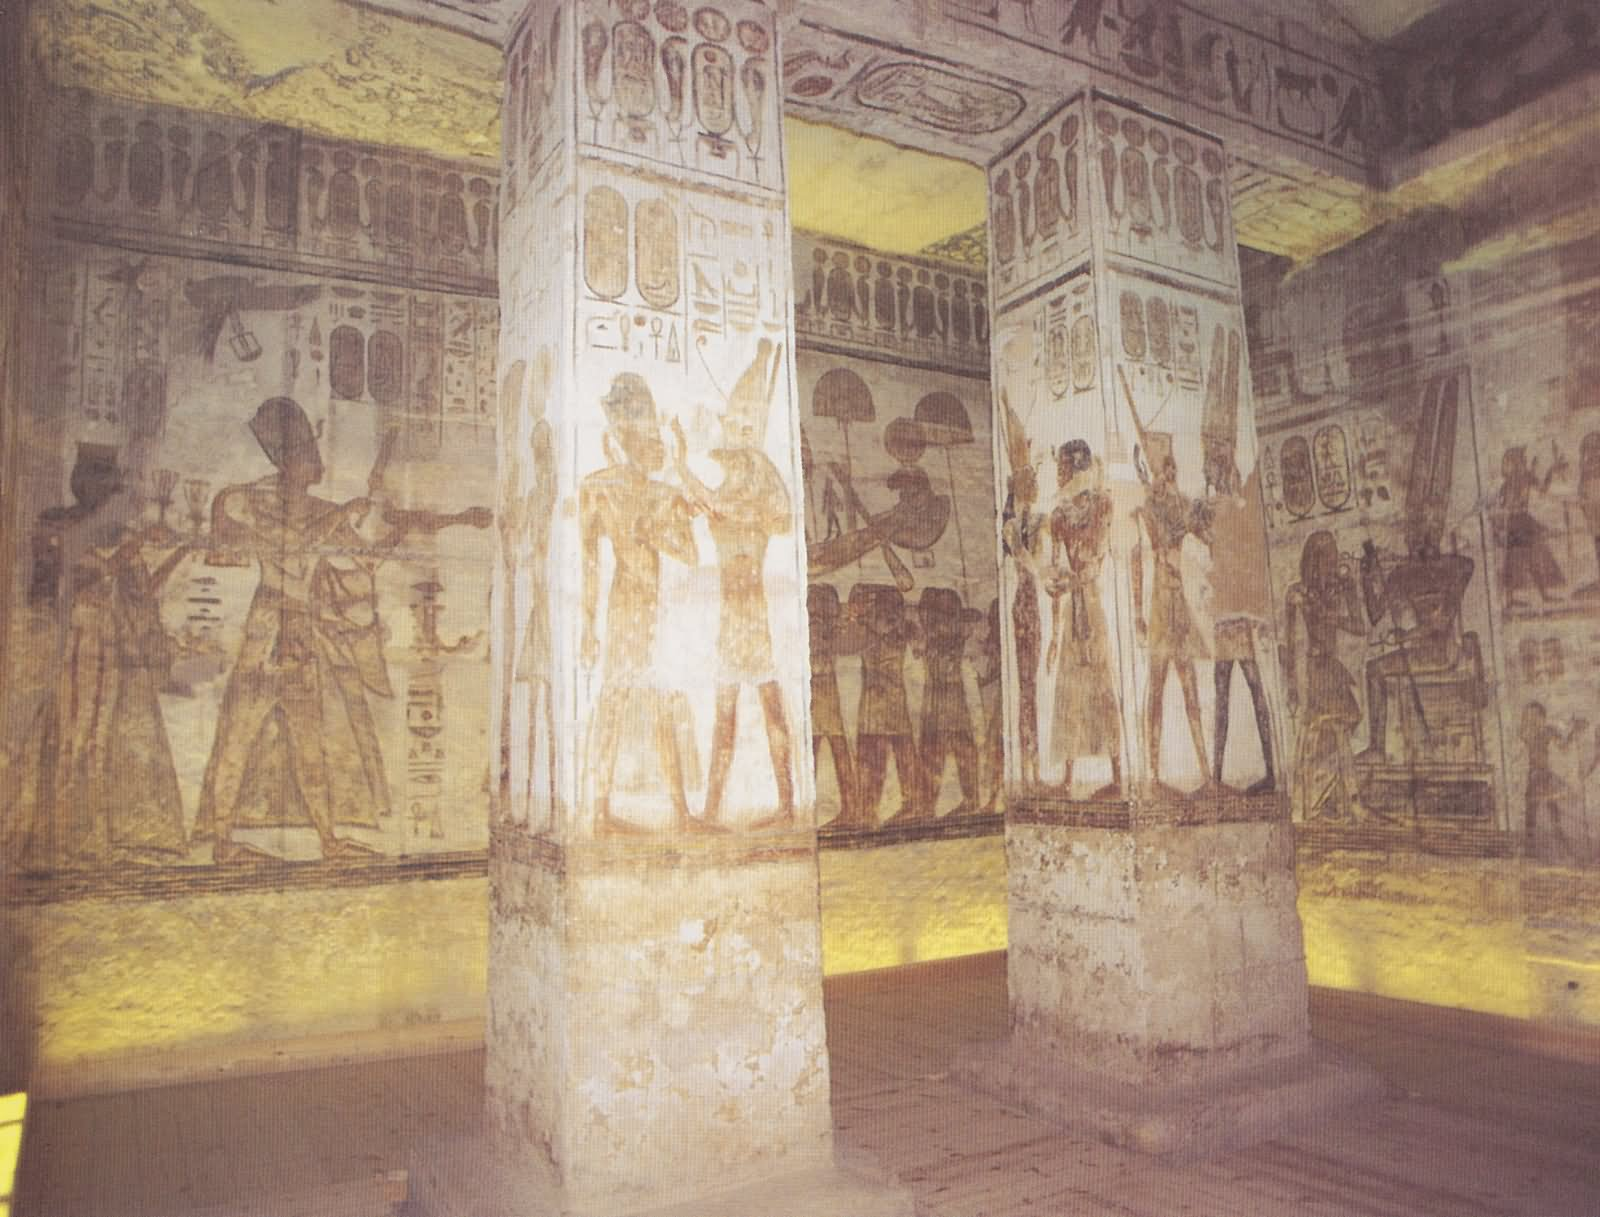 Architecture Pillars Inside The Abu Simbel